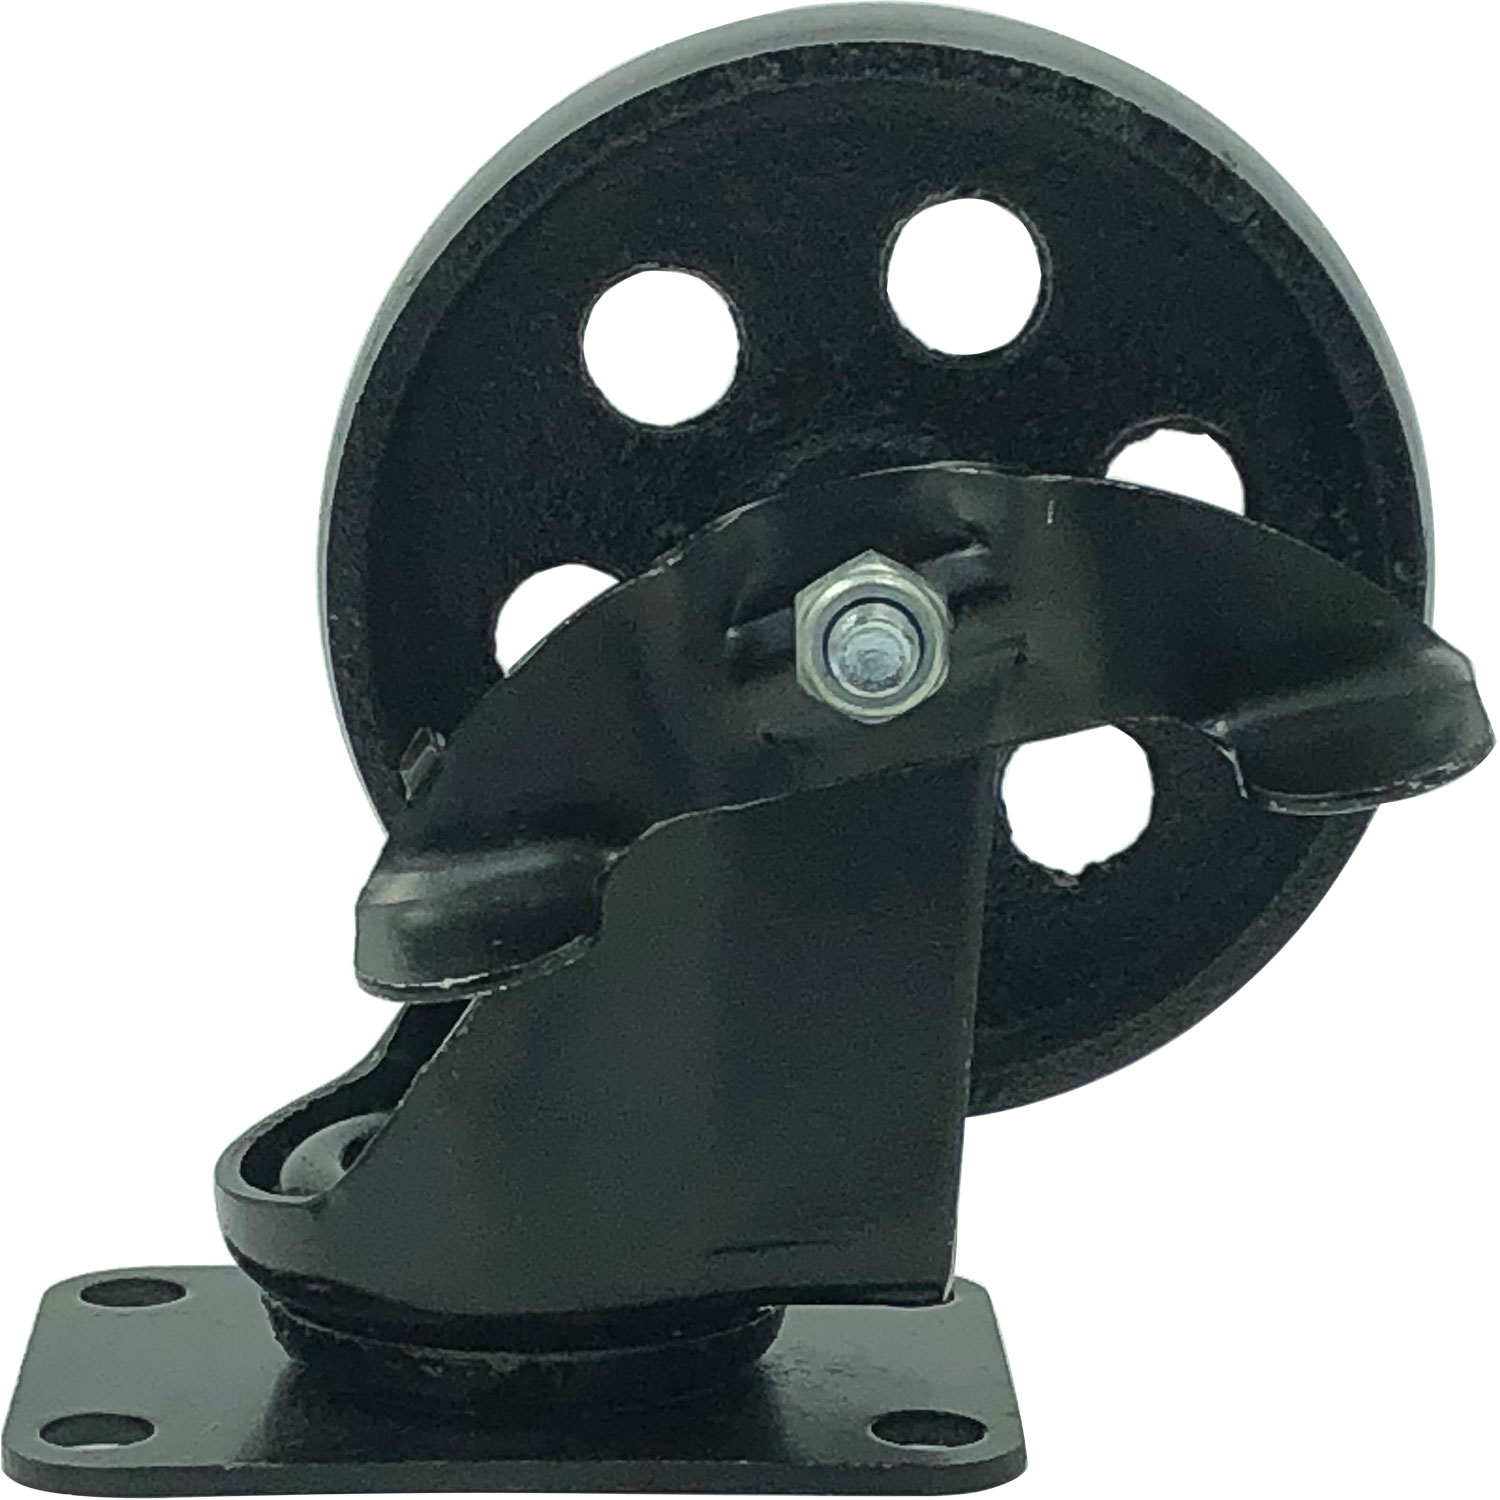 3 Combo FactorDuty 4 All Black Metal Swivel Plate Caster Wheels w//Brake Lock Heavy Duty High-Gauge Steel